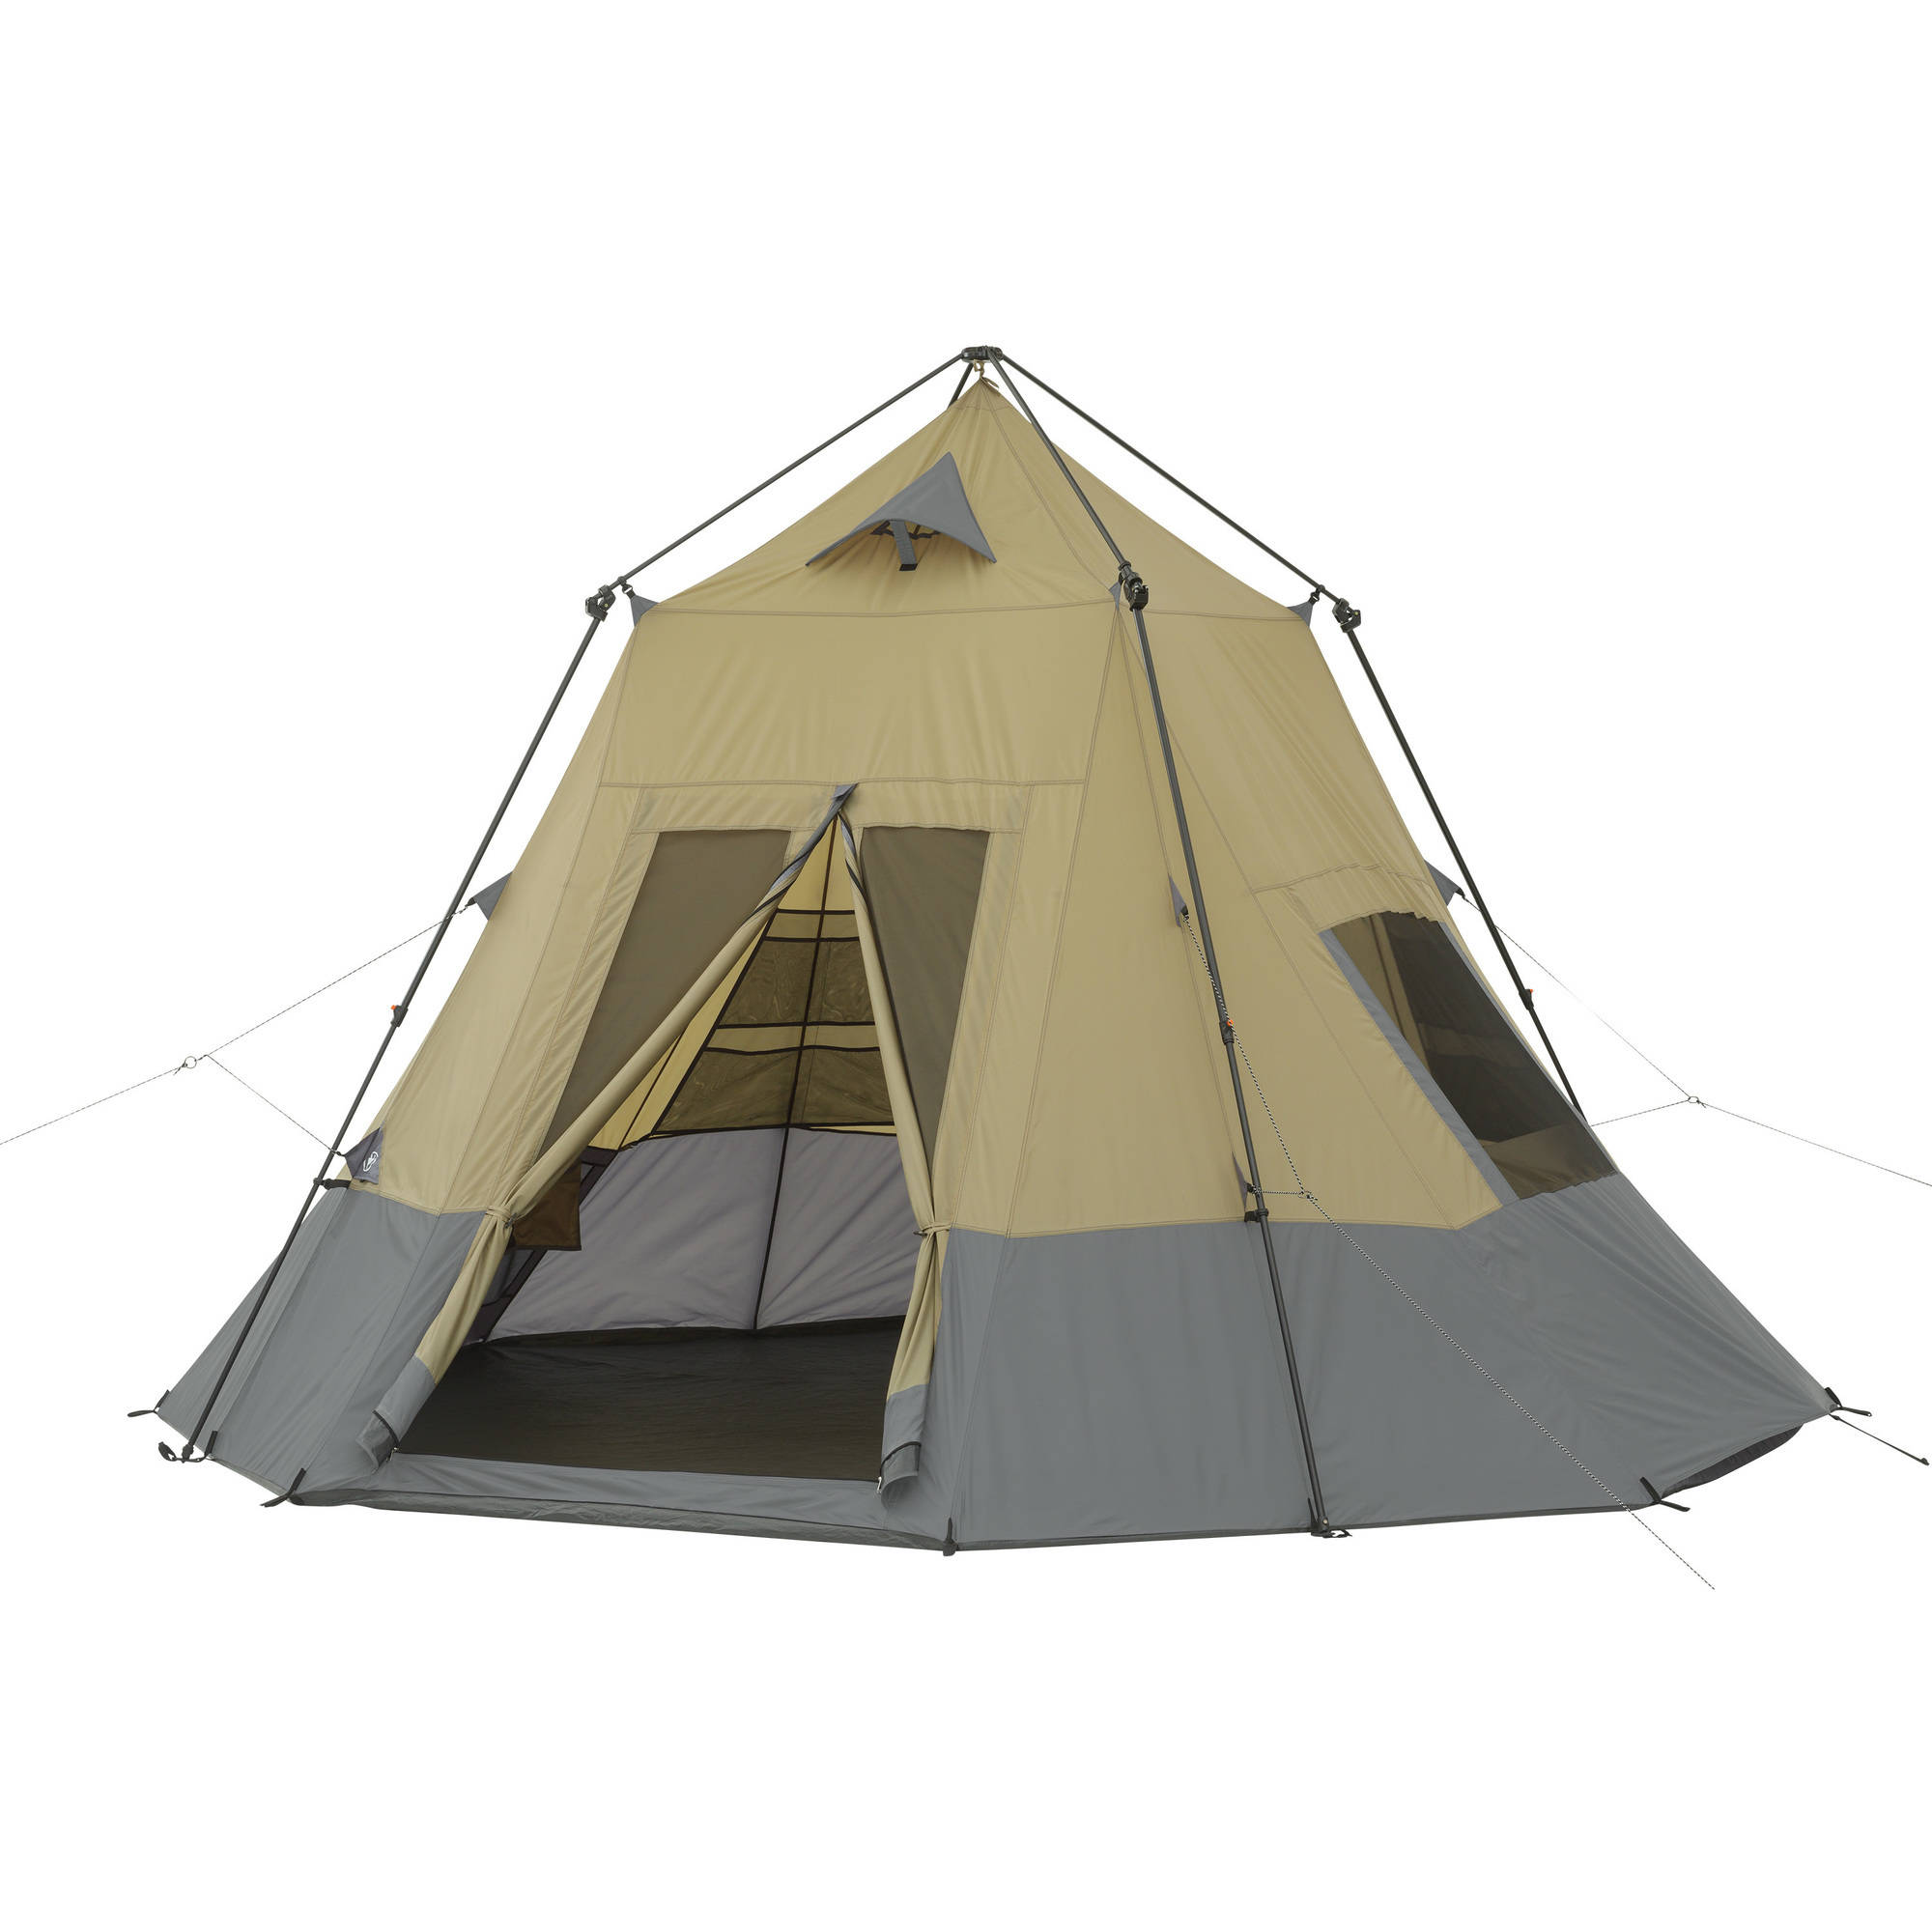 Ozark Trail 12' x 12' Instant Tepee Tent, Sleeps 7 by Bohemian Travel Gear Limited